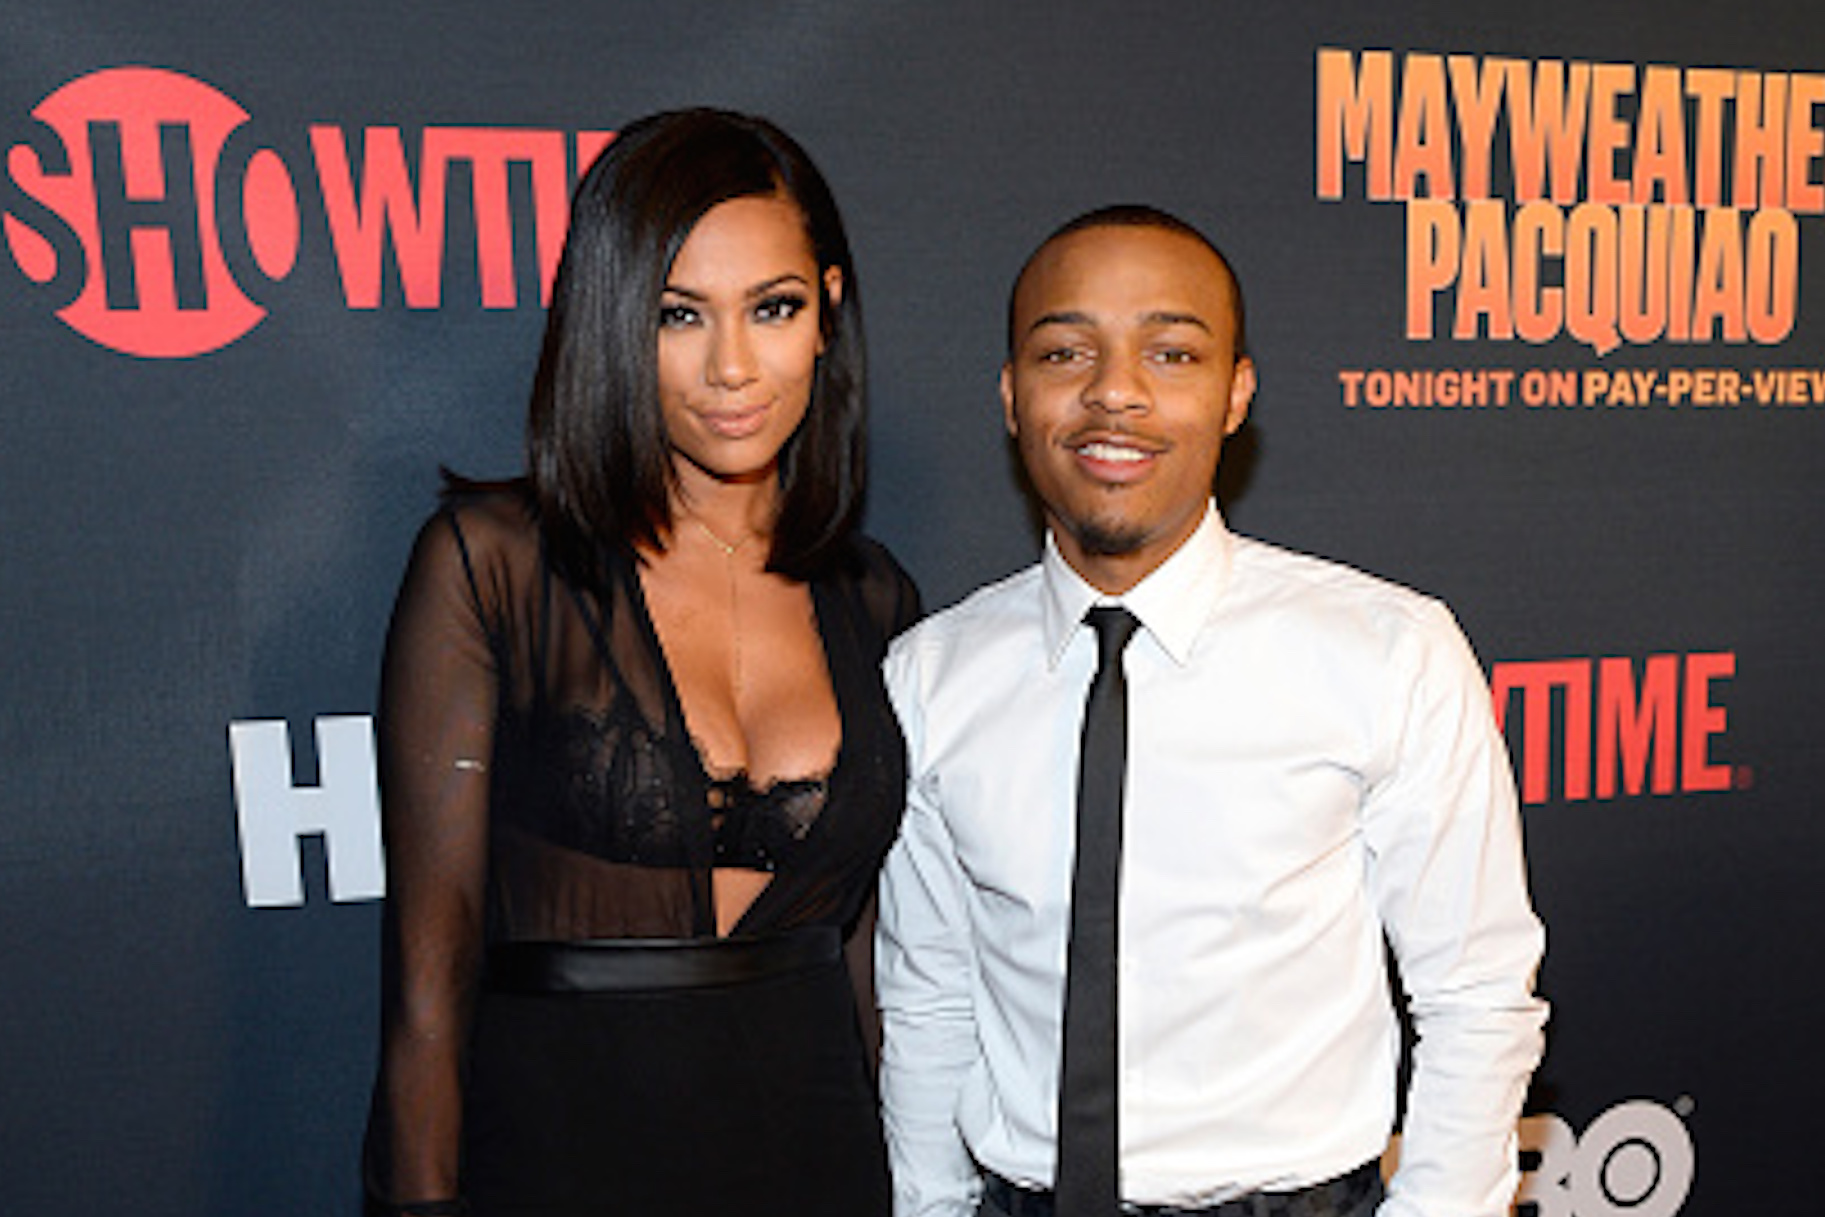 Pics Of Bow Wow Naked 40